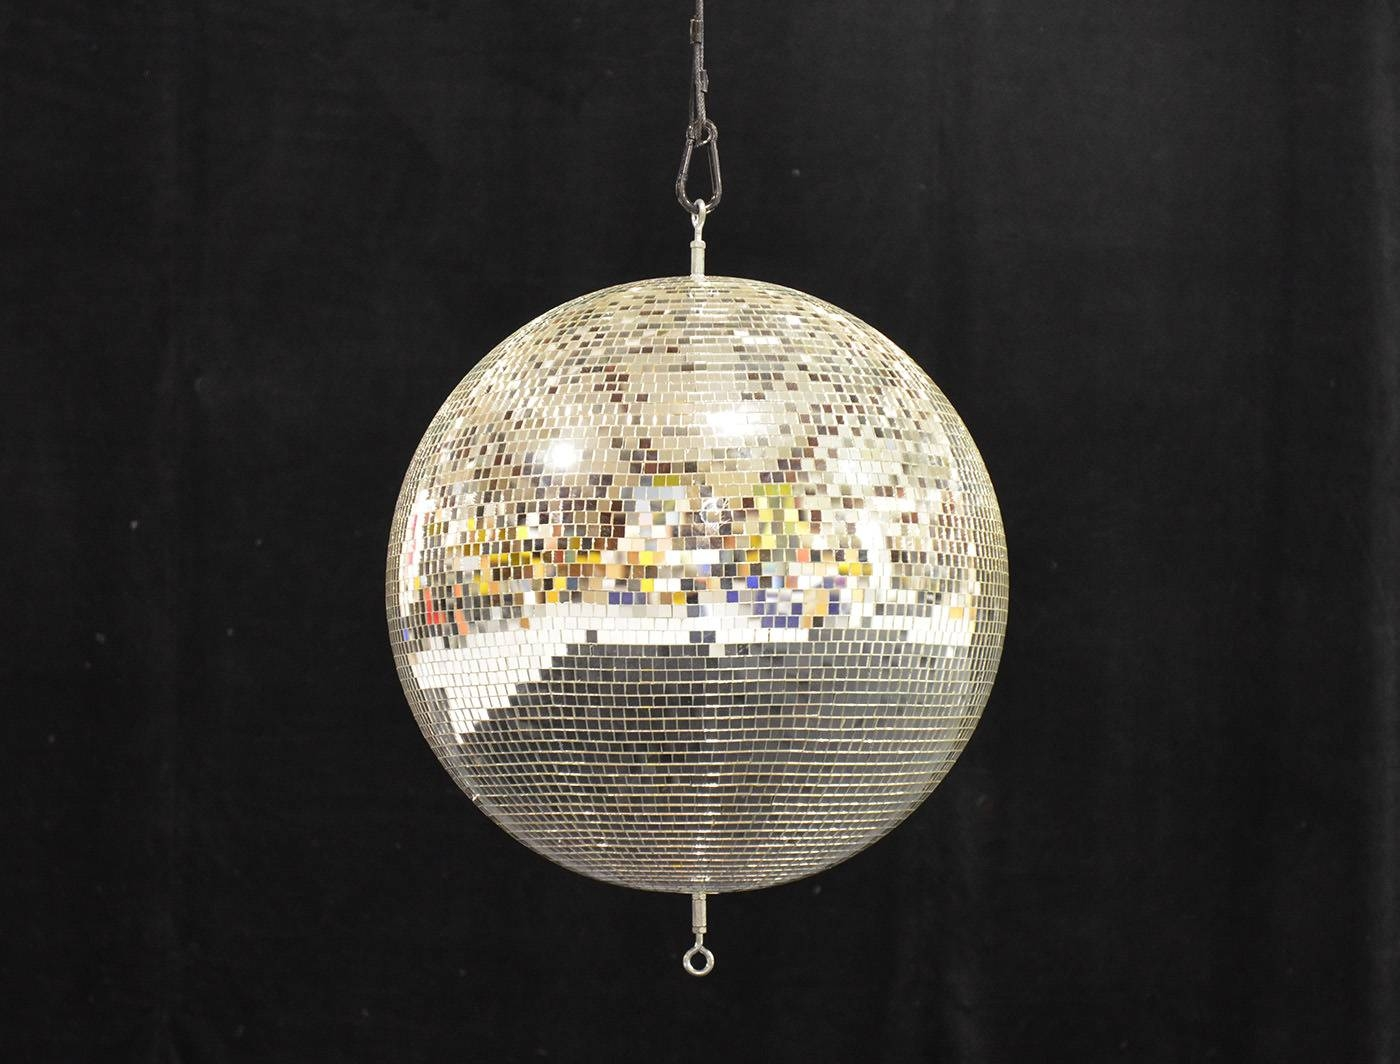 Disco Ball | Rental Backdrops & Rental Decor From Atomic Design pertaining to Disco Ball Ceiling Lights Fixtures (Image 9 of 15)